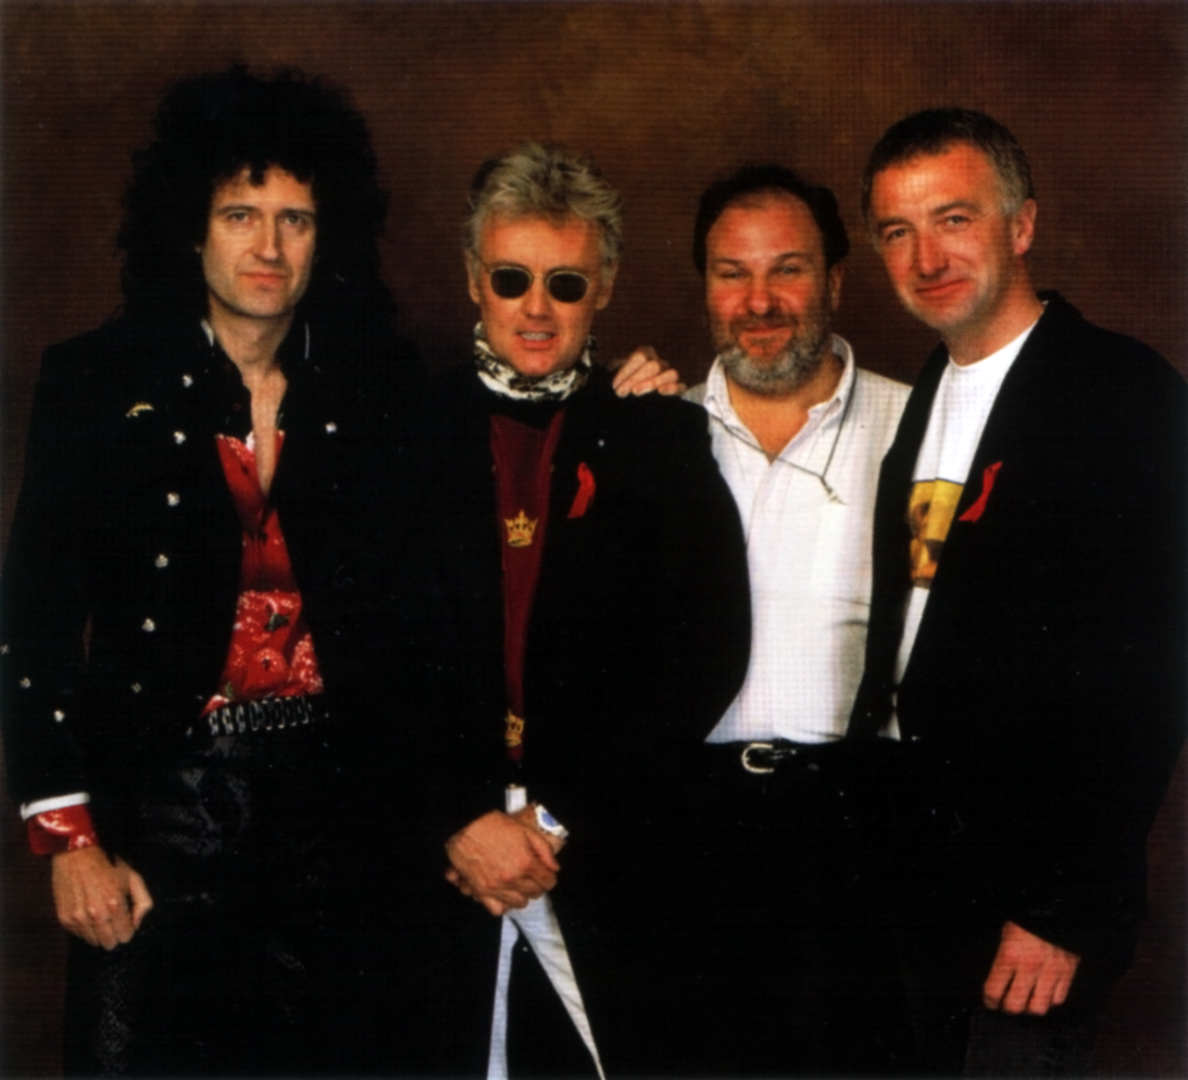 queen-with-harvey-goldsmith.png